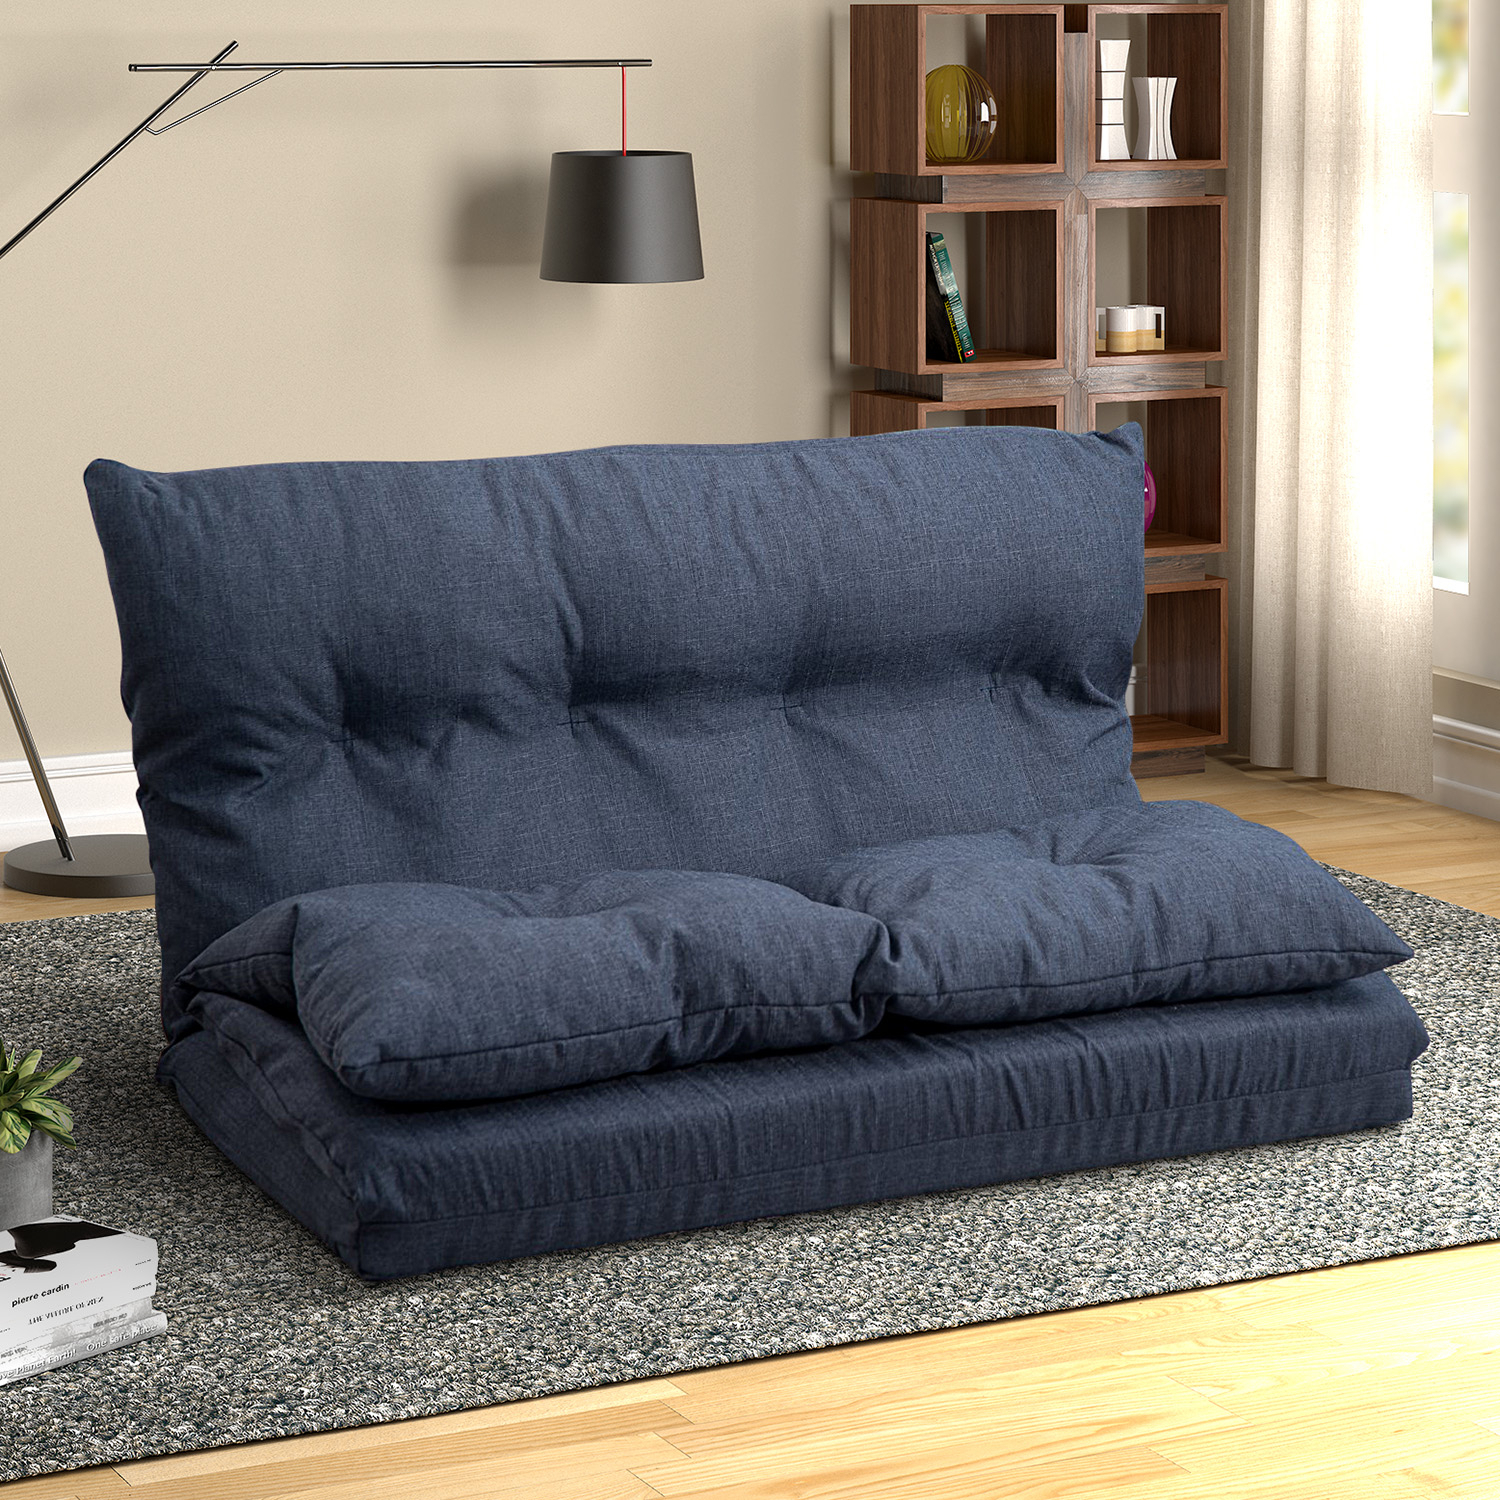 Floor Sofa Bed, Folding Futon Chaise Lounge Sofa Gaming With Regard To Lounge Sofas And Chairs (View 12 of 15)